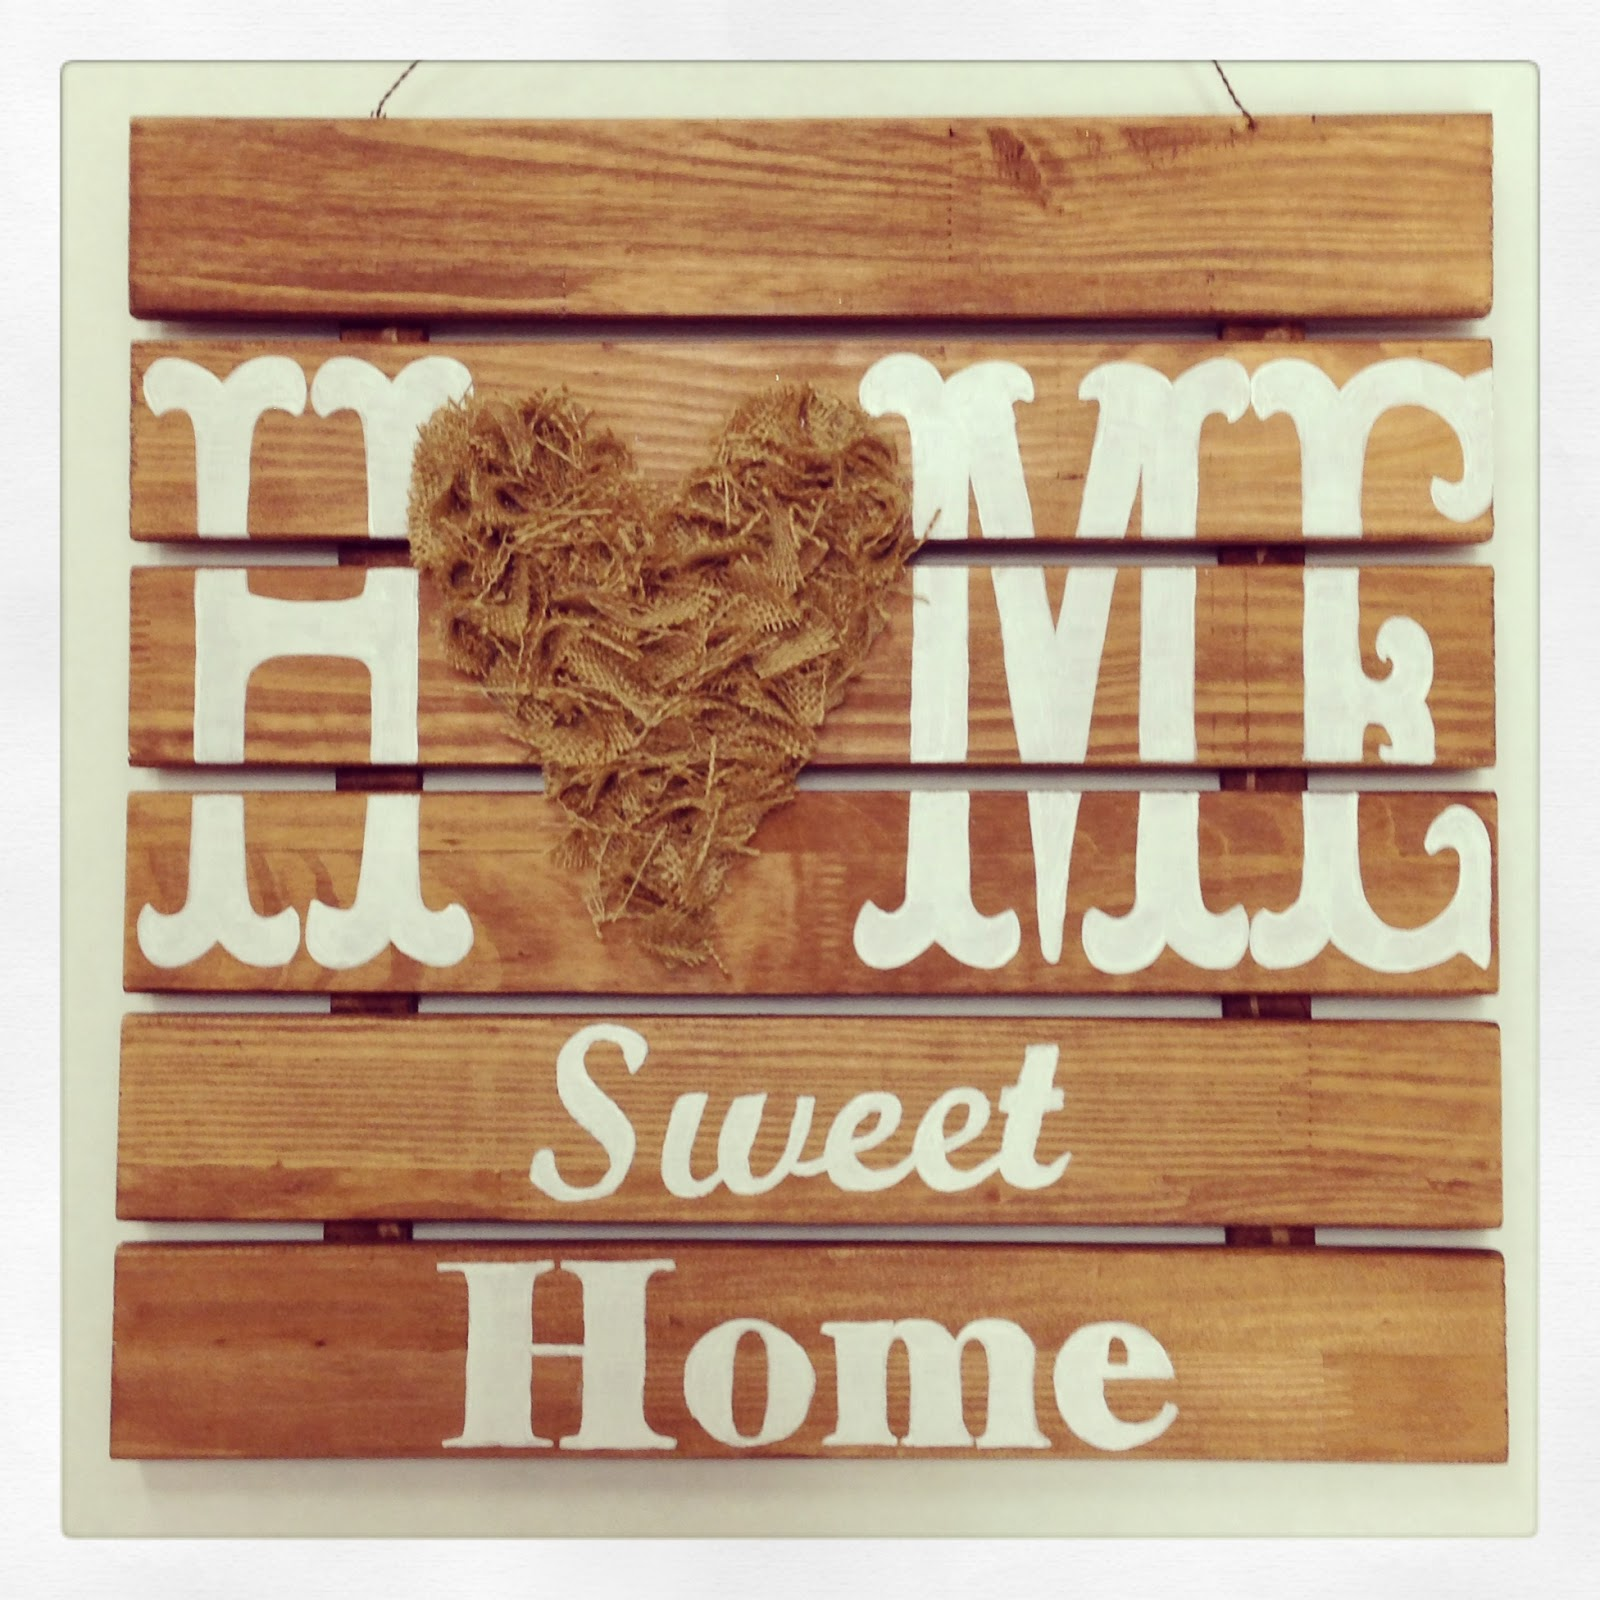 ... Related: Home Sweet Home Wooden Sign , Home Sweet Home Clipart